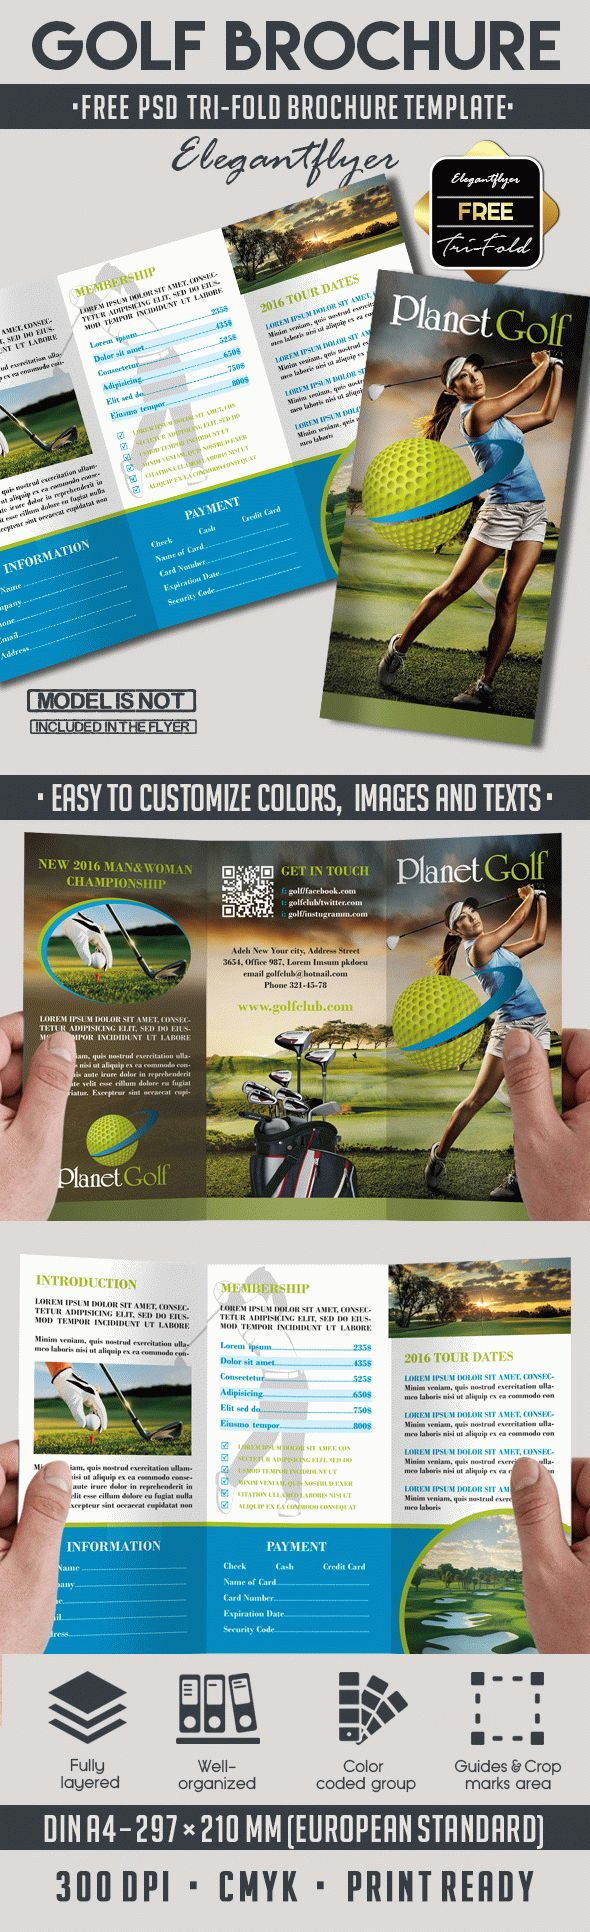 Golf club free psd tri fold psd brochure template by for Psd template brochure